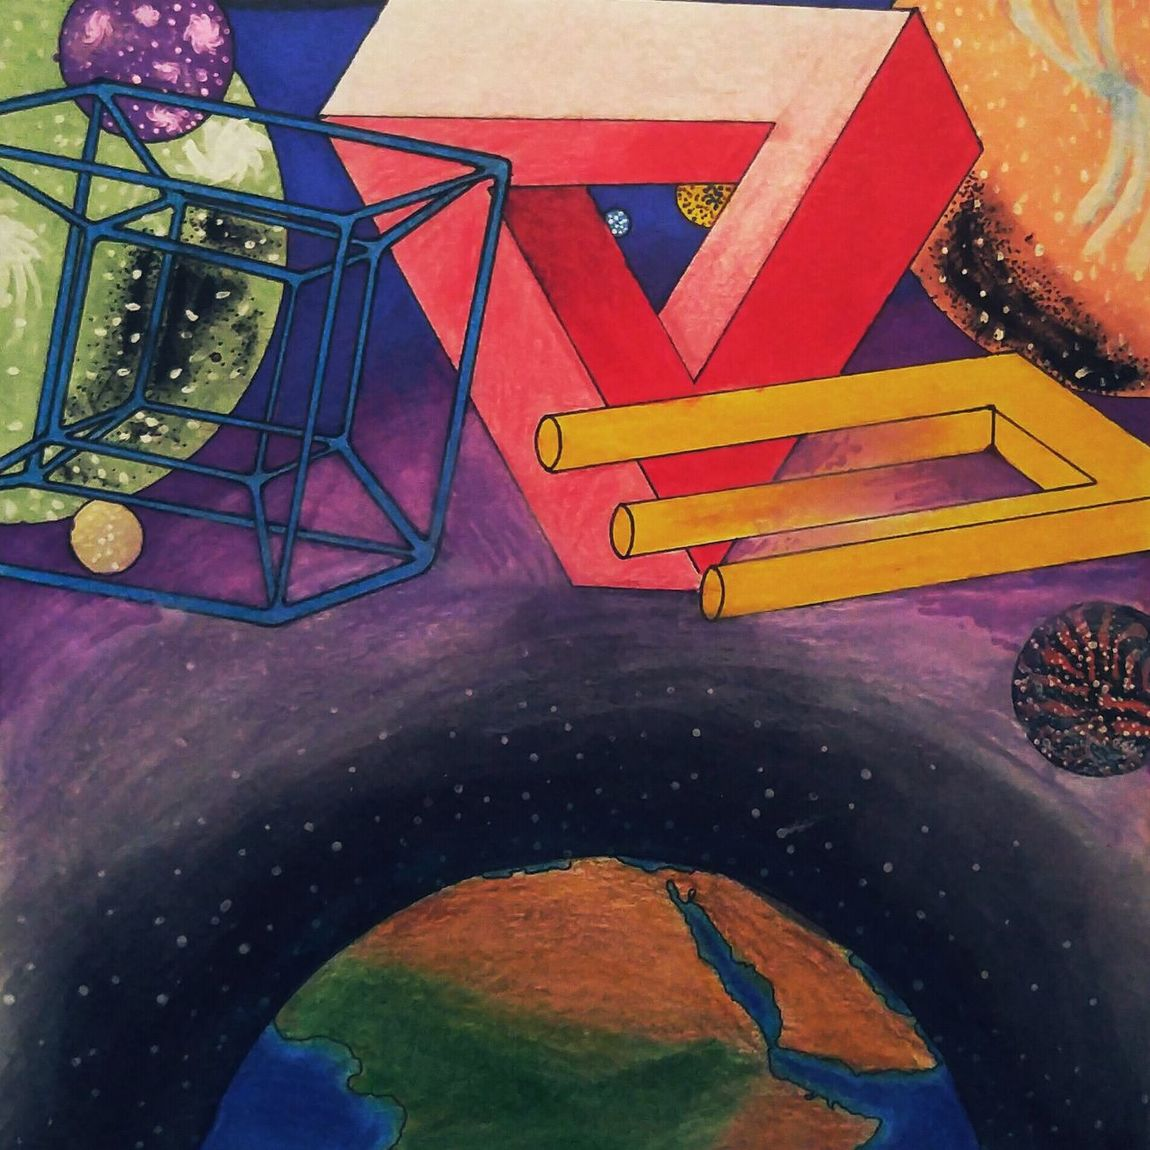 A Drawing I created. Rule Of Thirds Abstract 4th Dimension Paradox Multiverse Galaxies Earth 3rd Dimension Earth Without Art Is Just Eh Mixed Media Strong Composition Passionate Artist Art Student at Kennesaw State University Check This Out